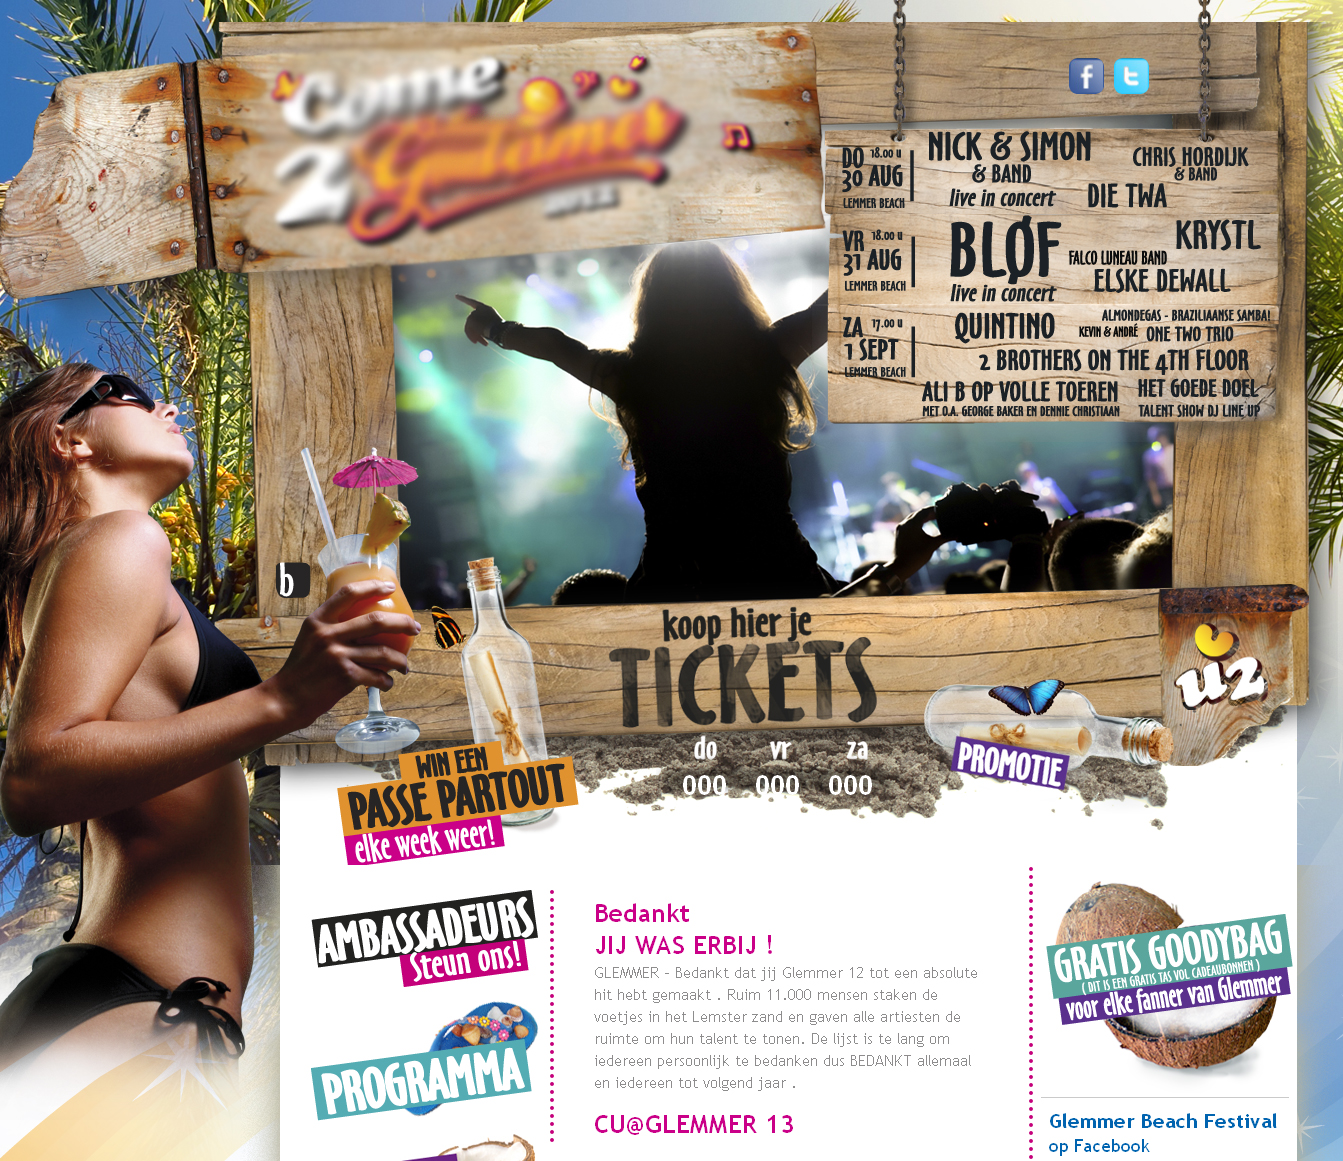 Music / Event / Ticket Booking Website